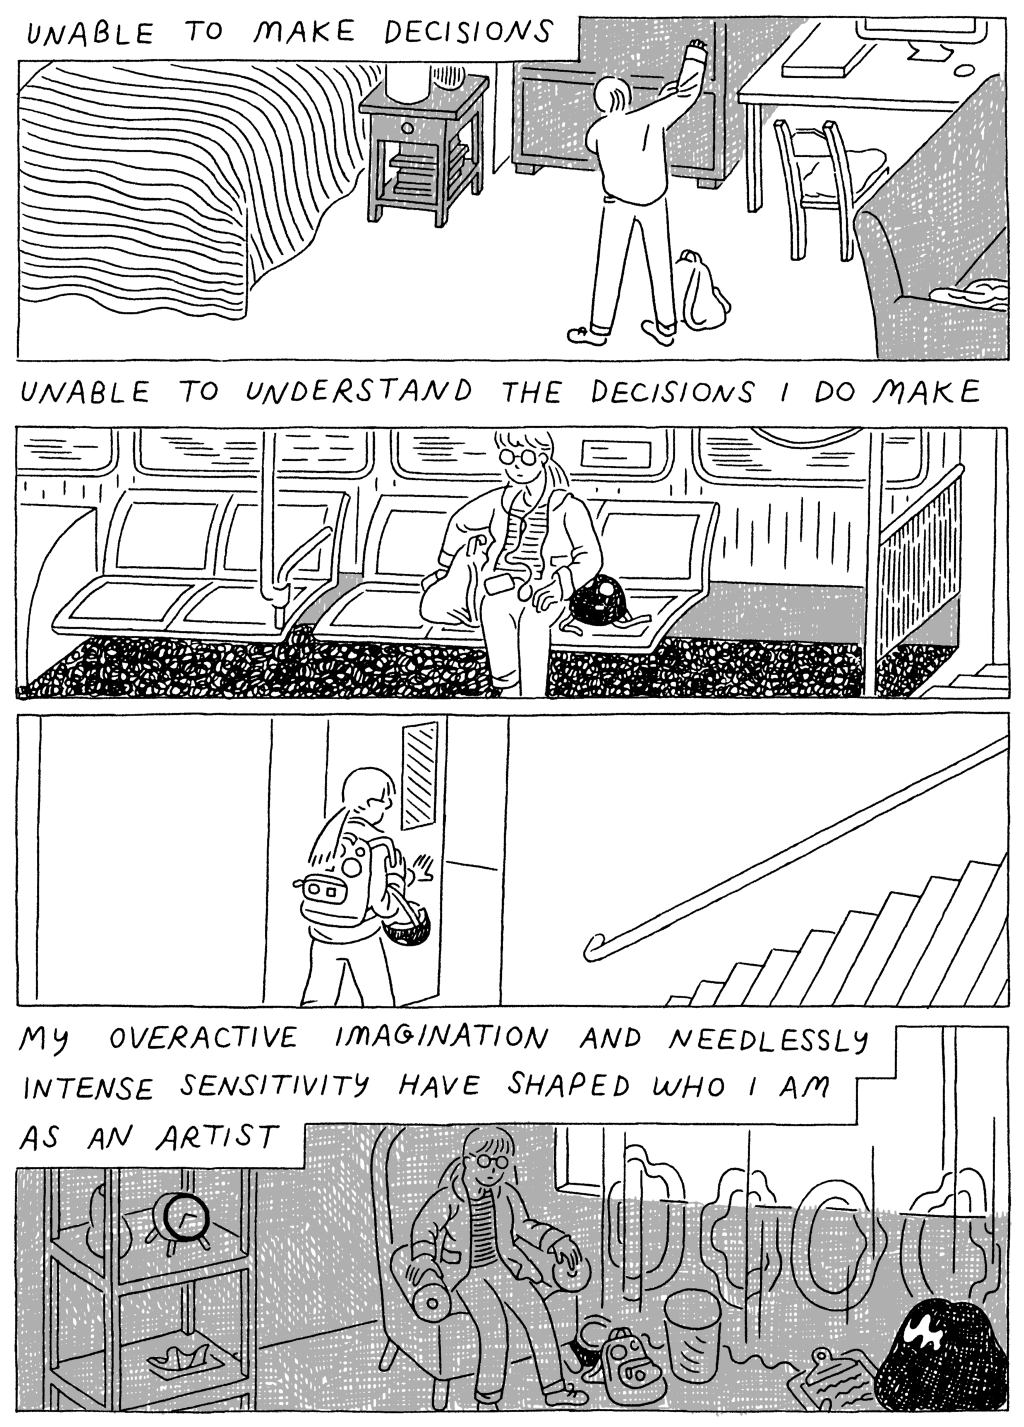 Panel 1: (Woman, pulling on sweatshirt.) Unable to make decisions. Panel 2: (Woman, sitting on the train.) Unable to understand the decisions I do make. Panel 4: (Woman, walking out the door.) Panel 5: (Woman, sitting in darkness.) My overactive imagination and needlessly intense sensitivity have shaped who I am as an artist.